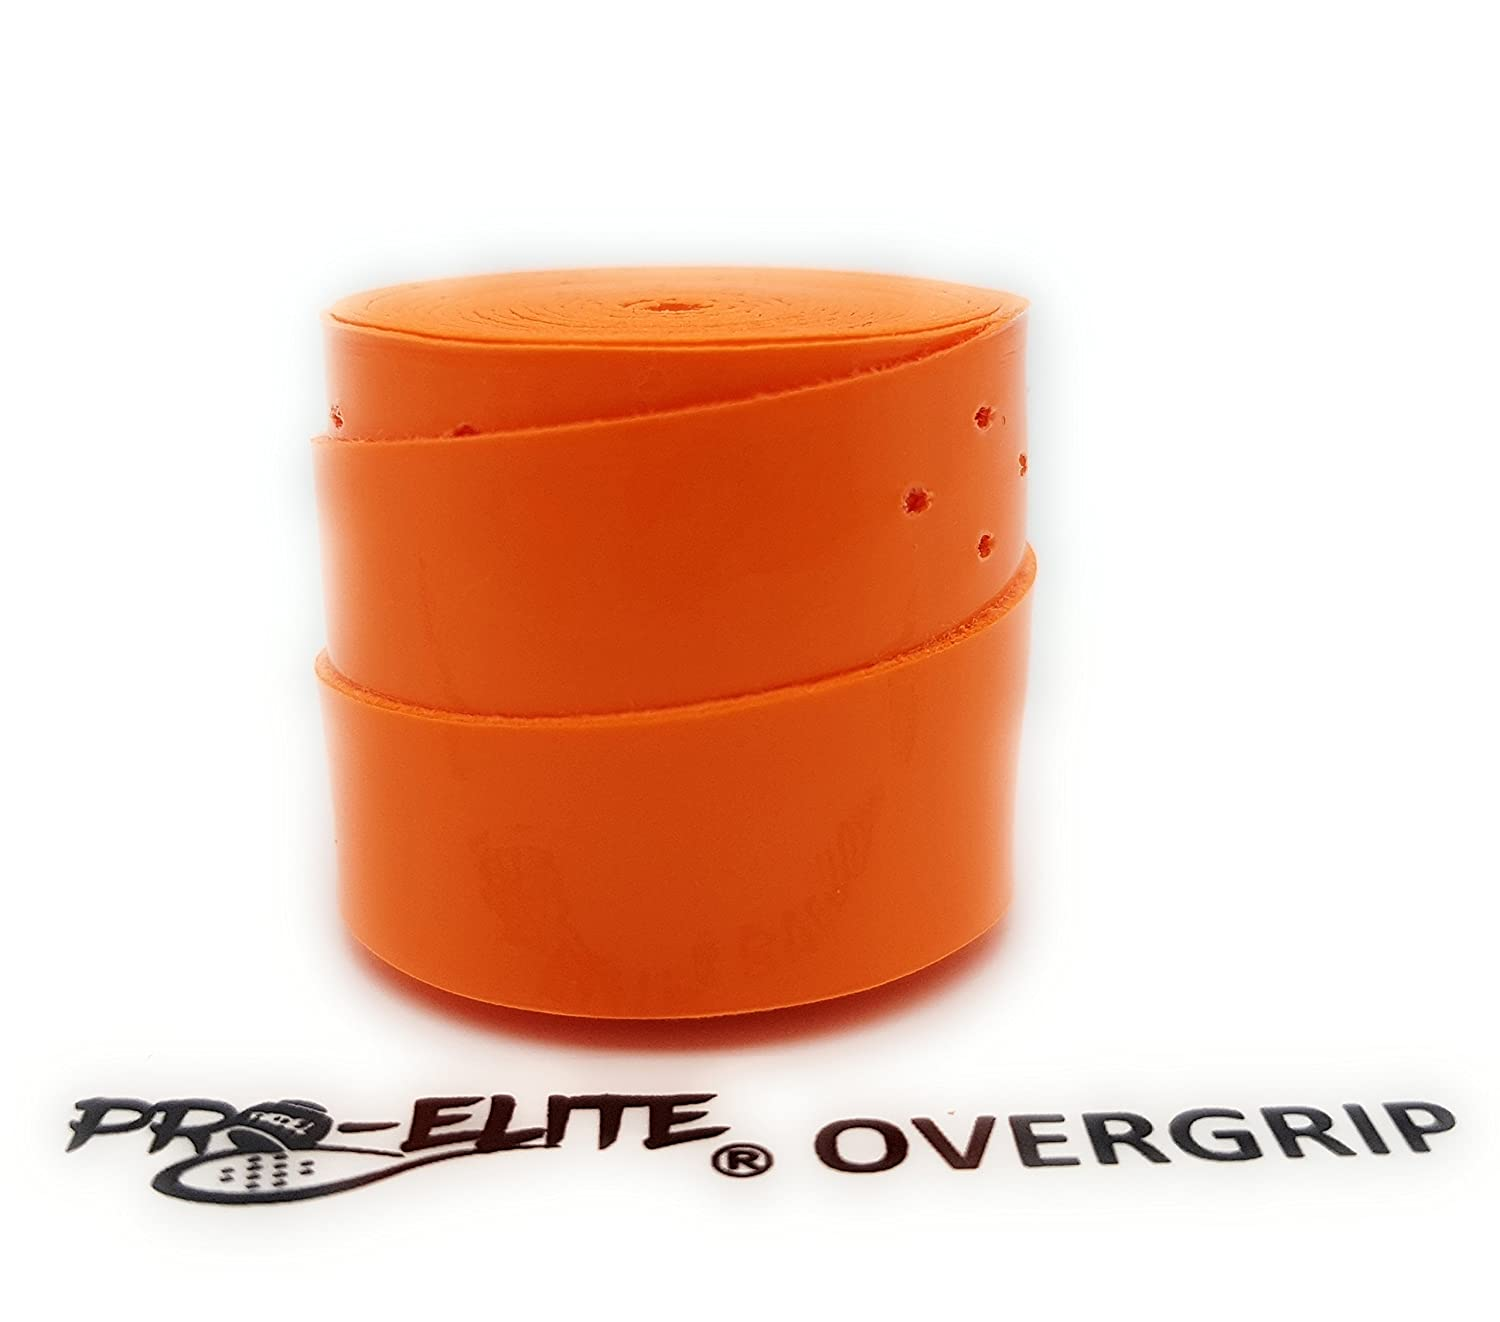 overgrip Pro Elite Confort Liso Naranja Flúor: Amazon.es ...